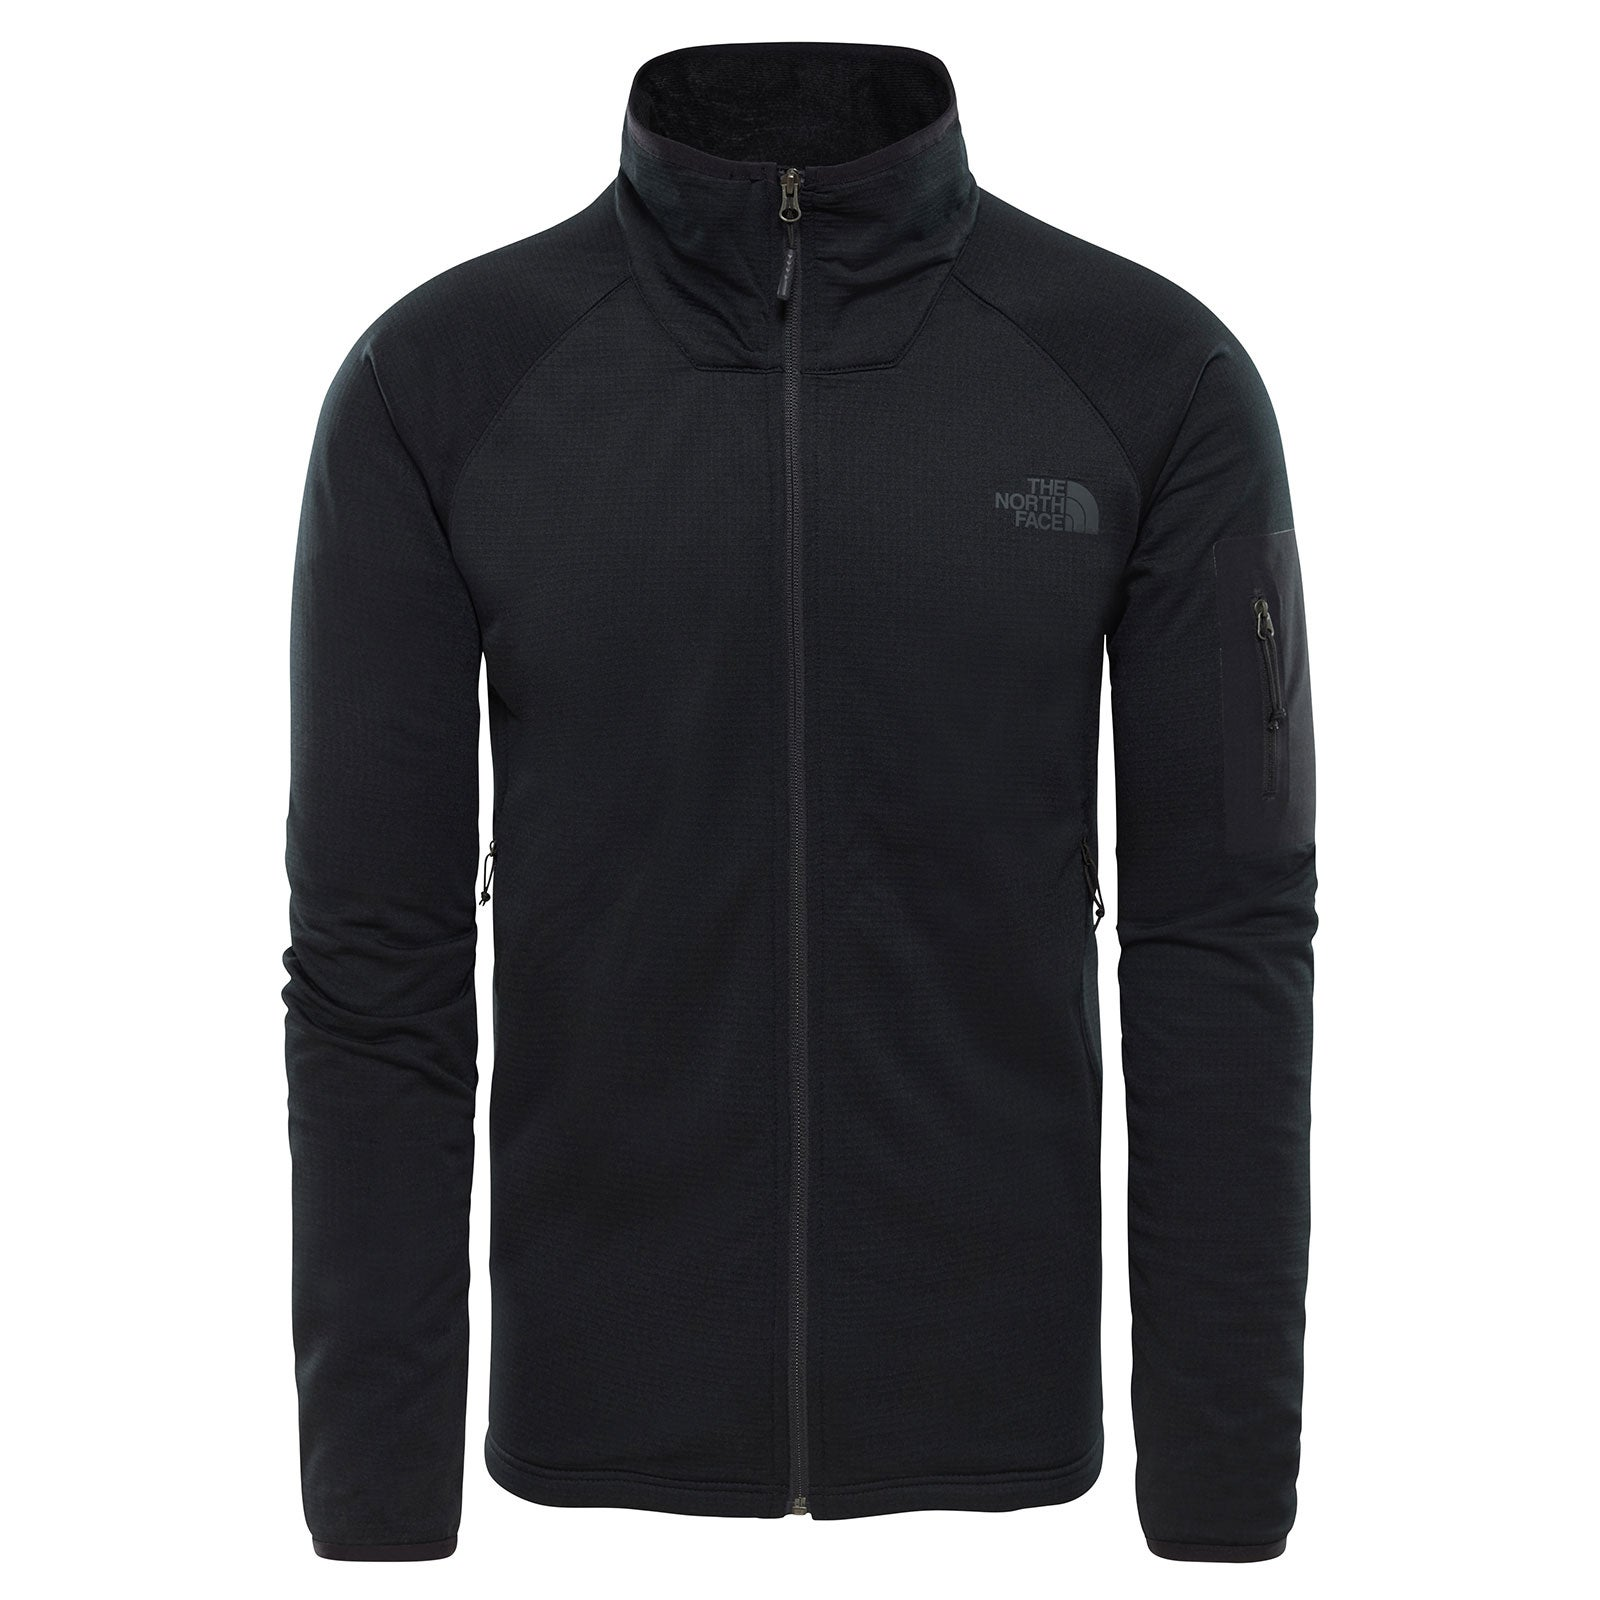 58fc4a021061b Polares North Face Borod Full Zip de Webtogs.com